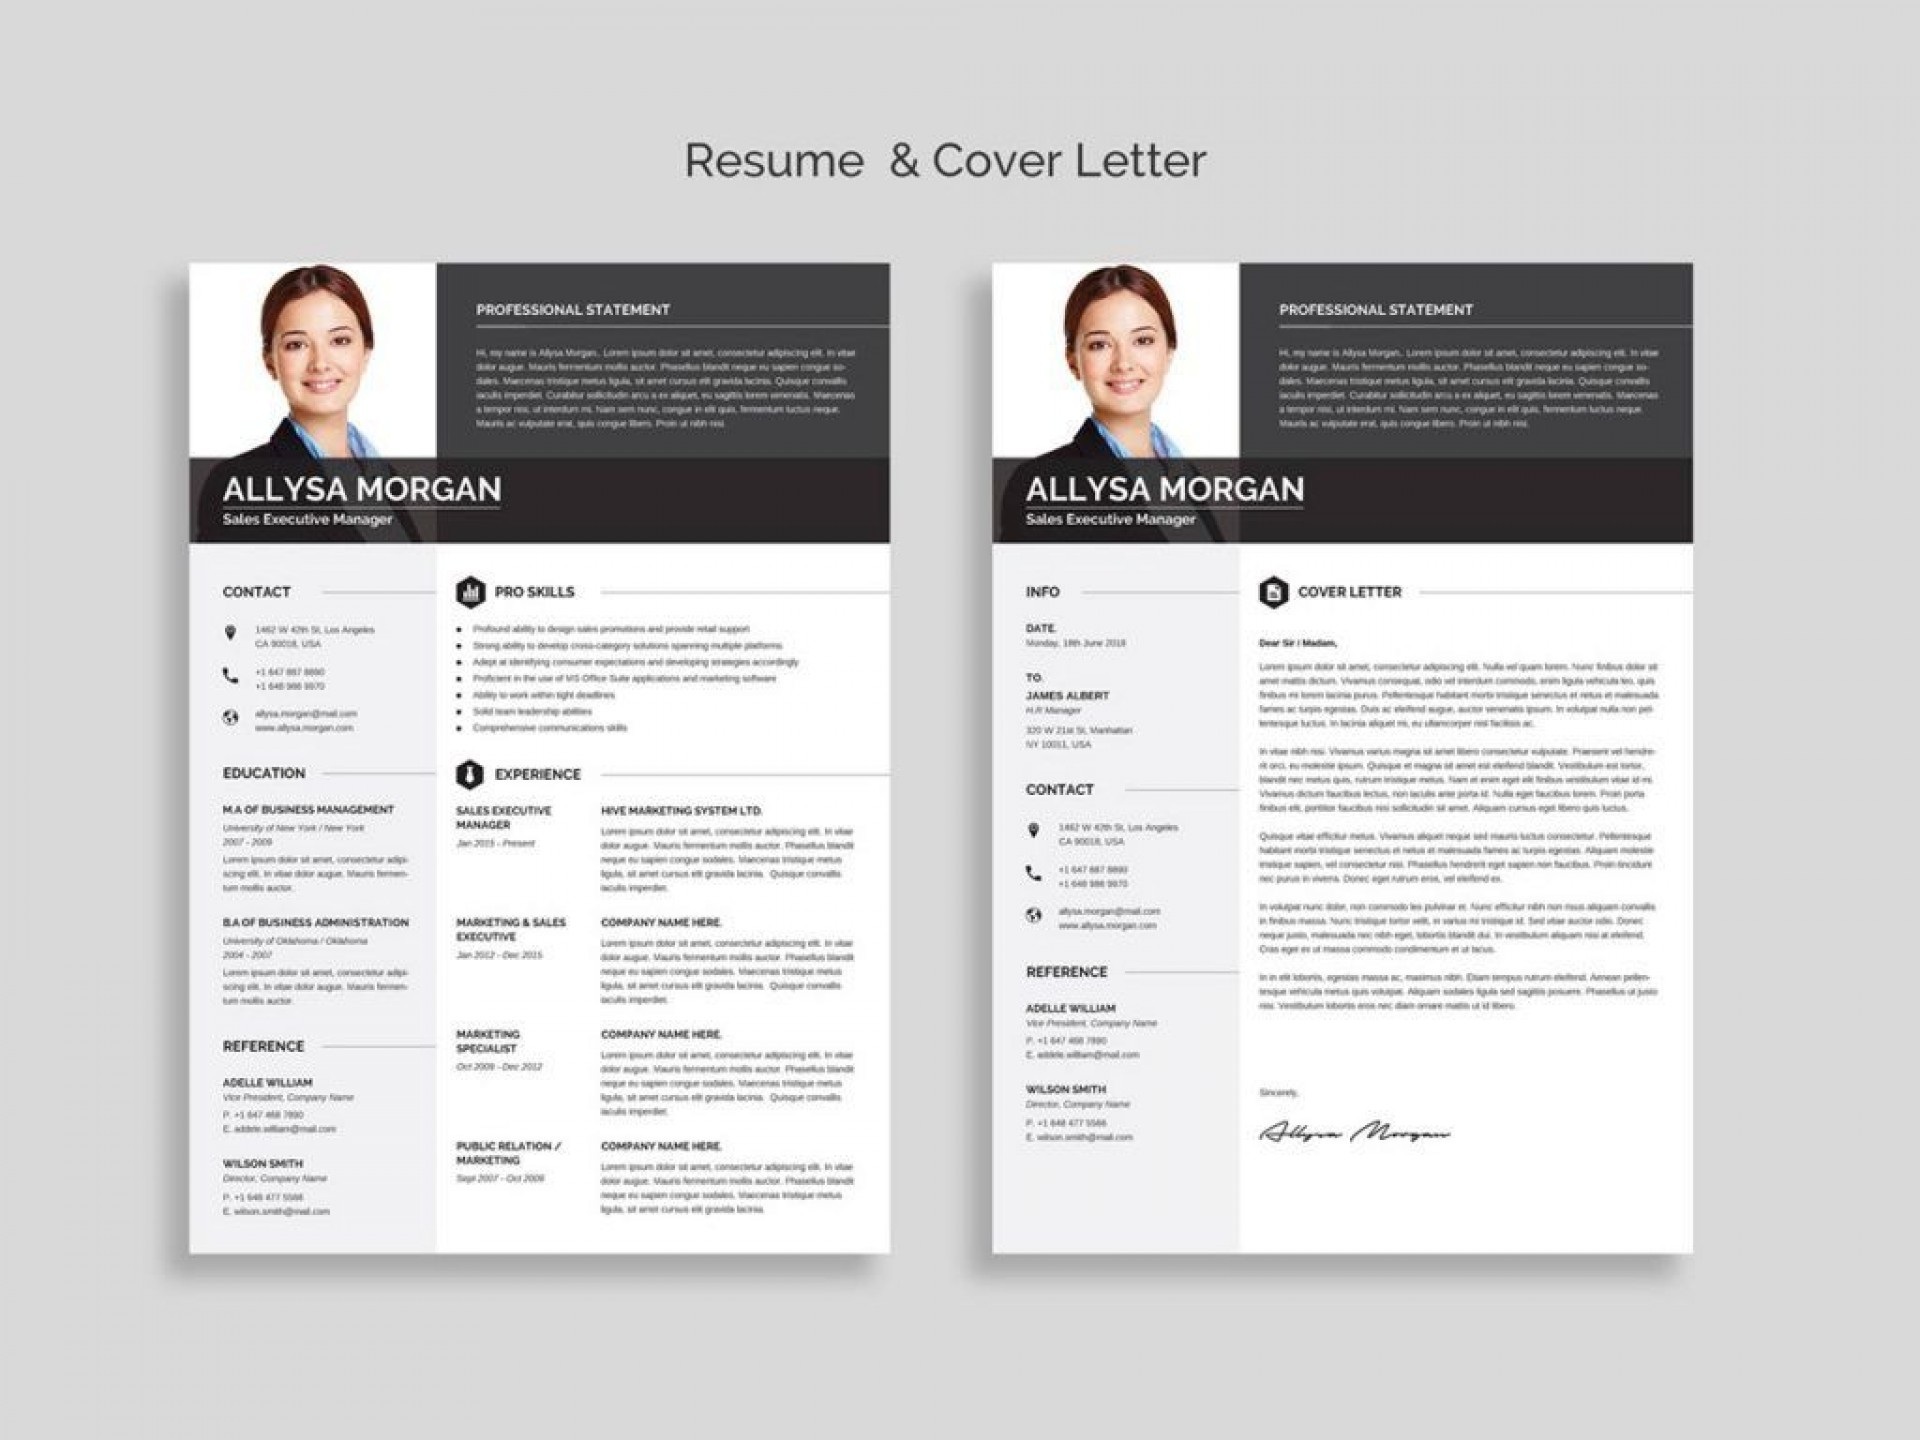 003 Top Resume Template Word Free Download 2019 High Definition  Cv1920